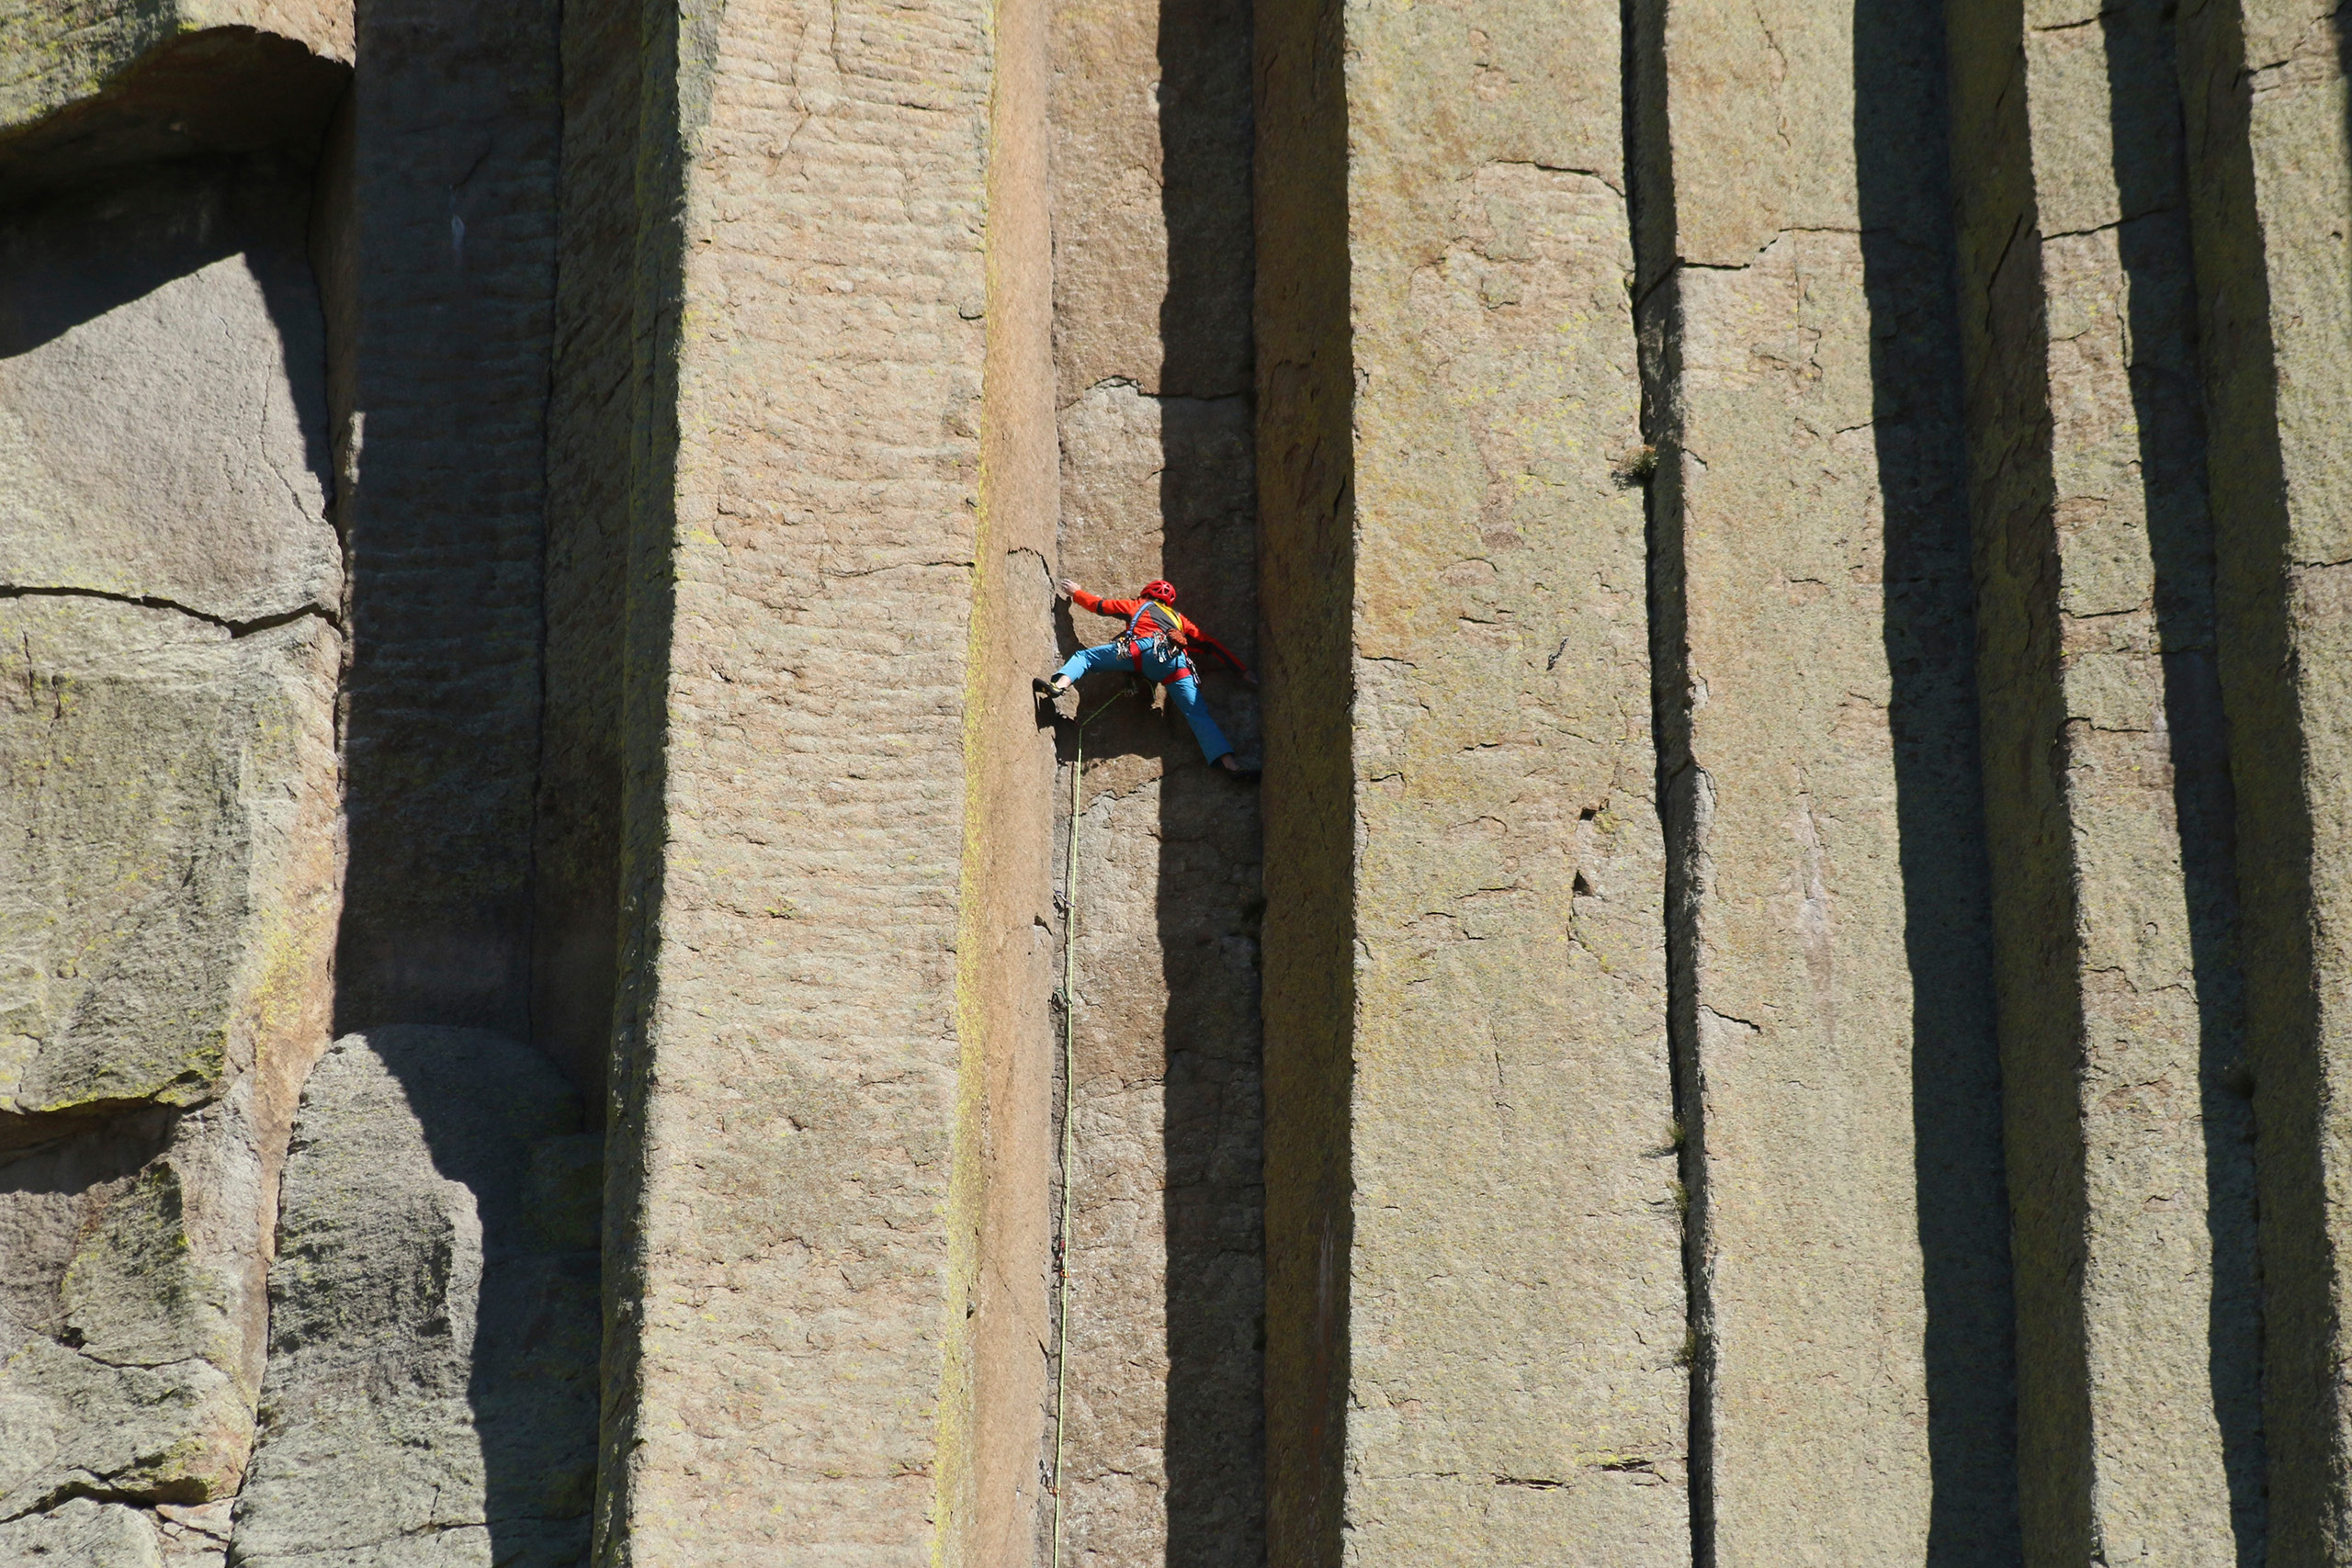 Scaling Devil's Tower: Just another day at the office for Conrad Anker